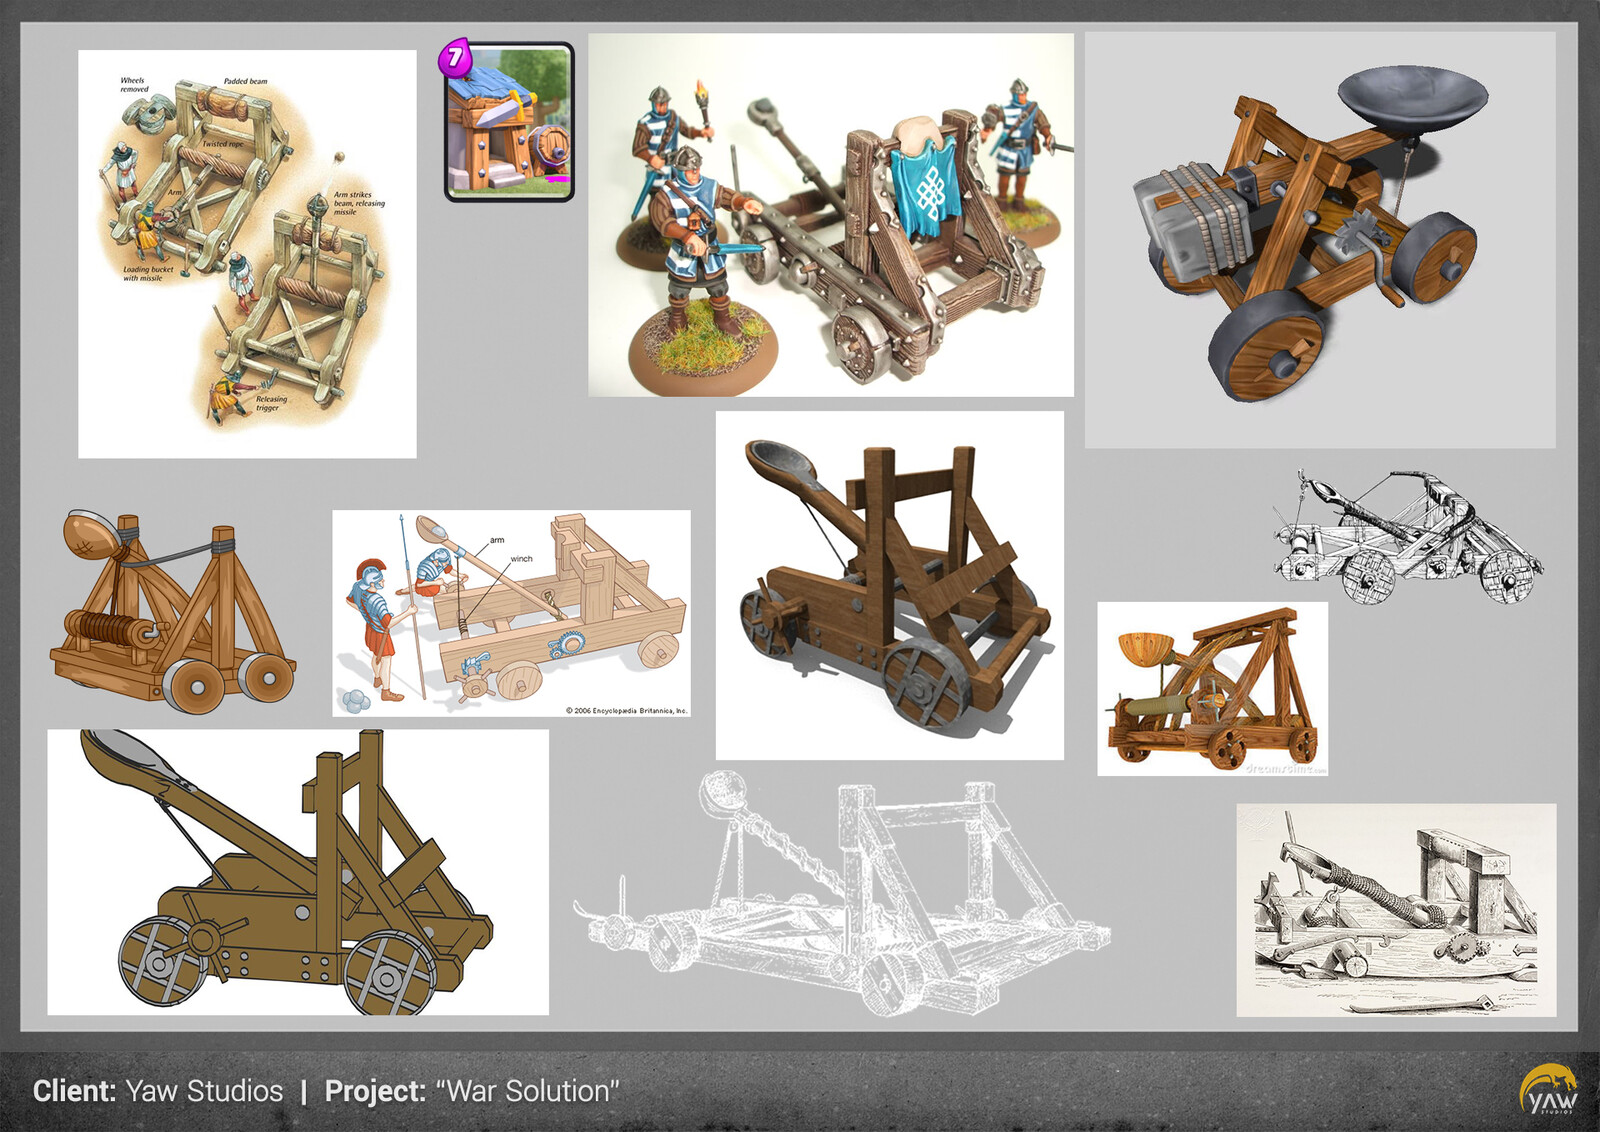 first research about catapults and its mechanisms